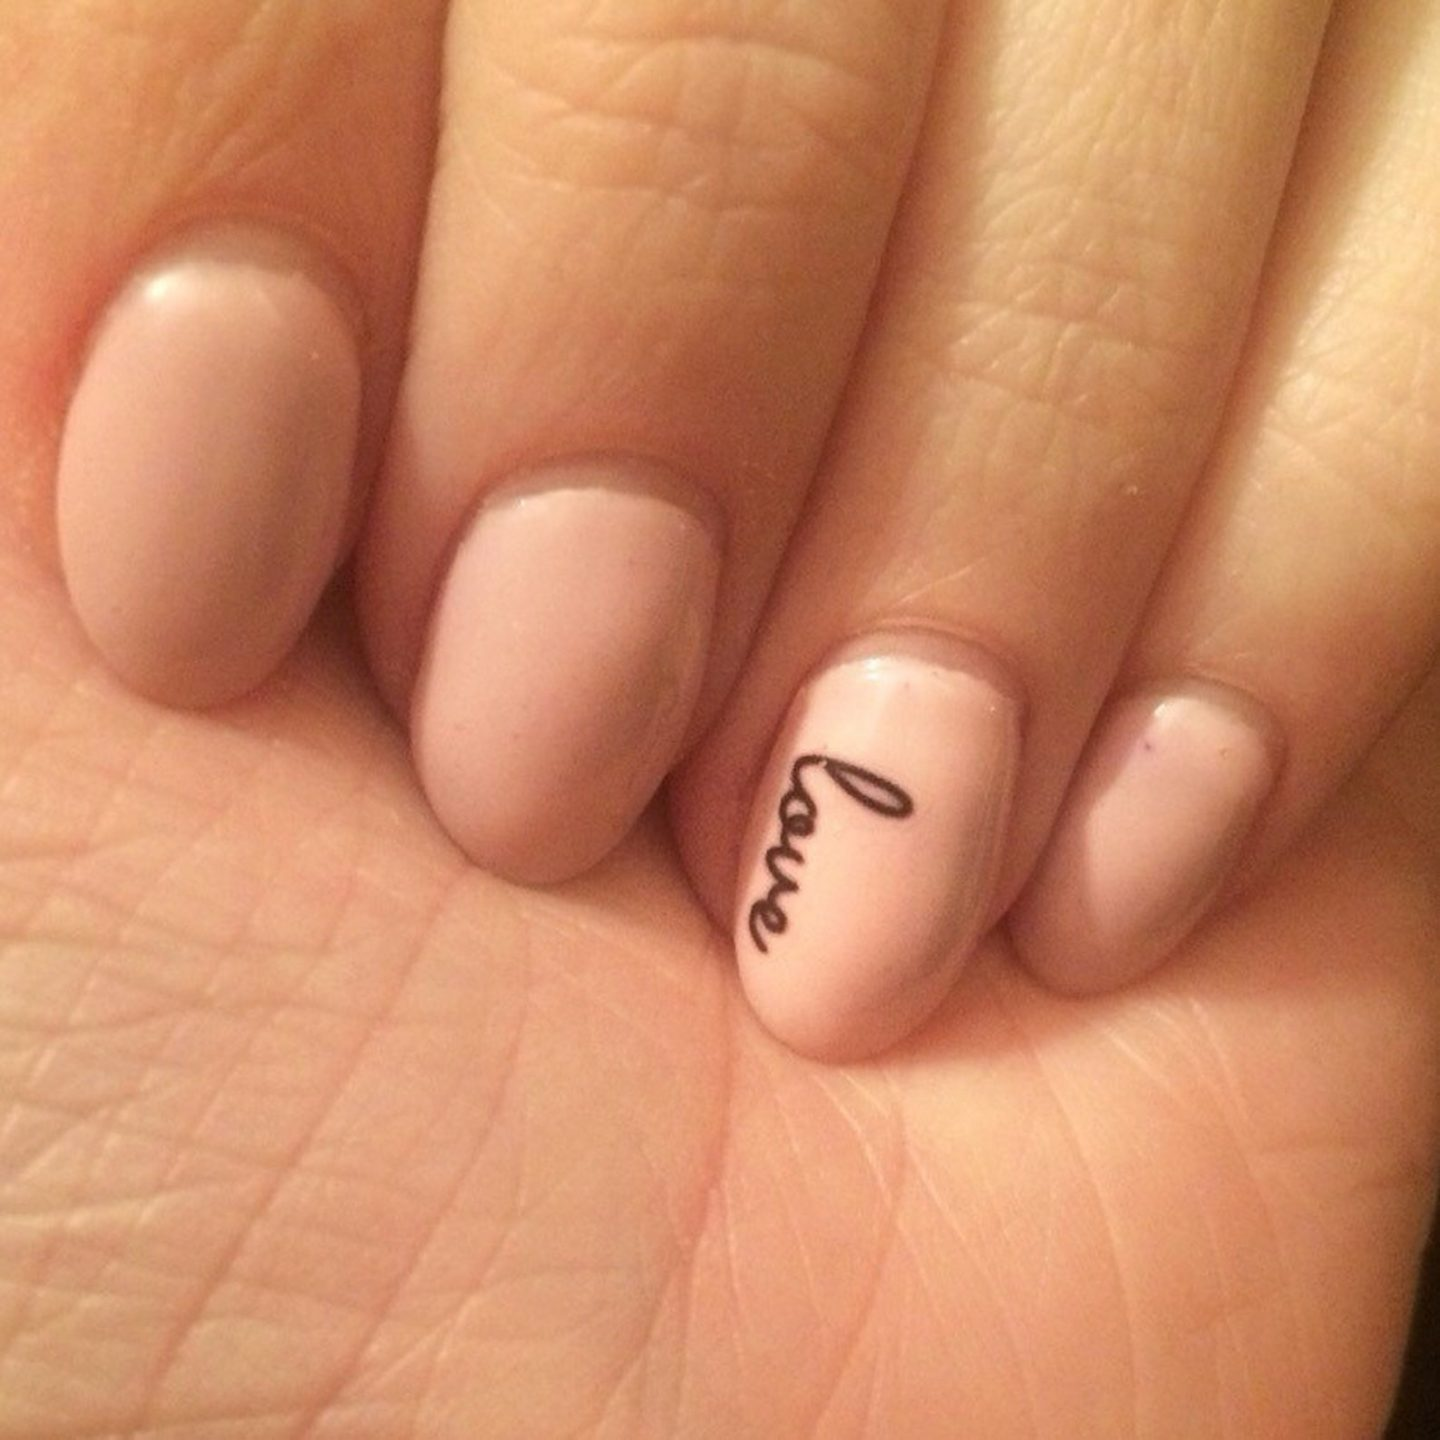 Short nude nails for the bride